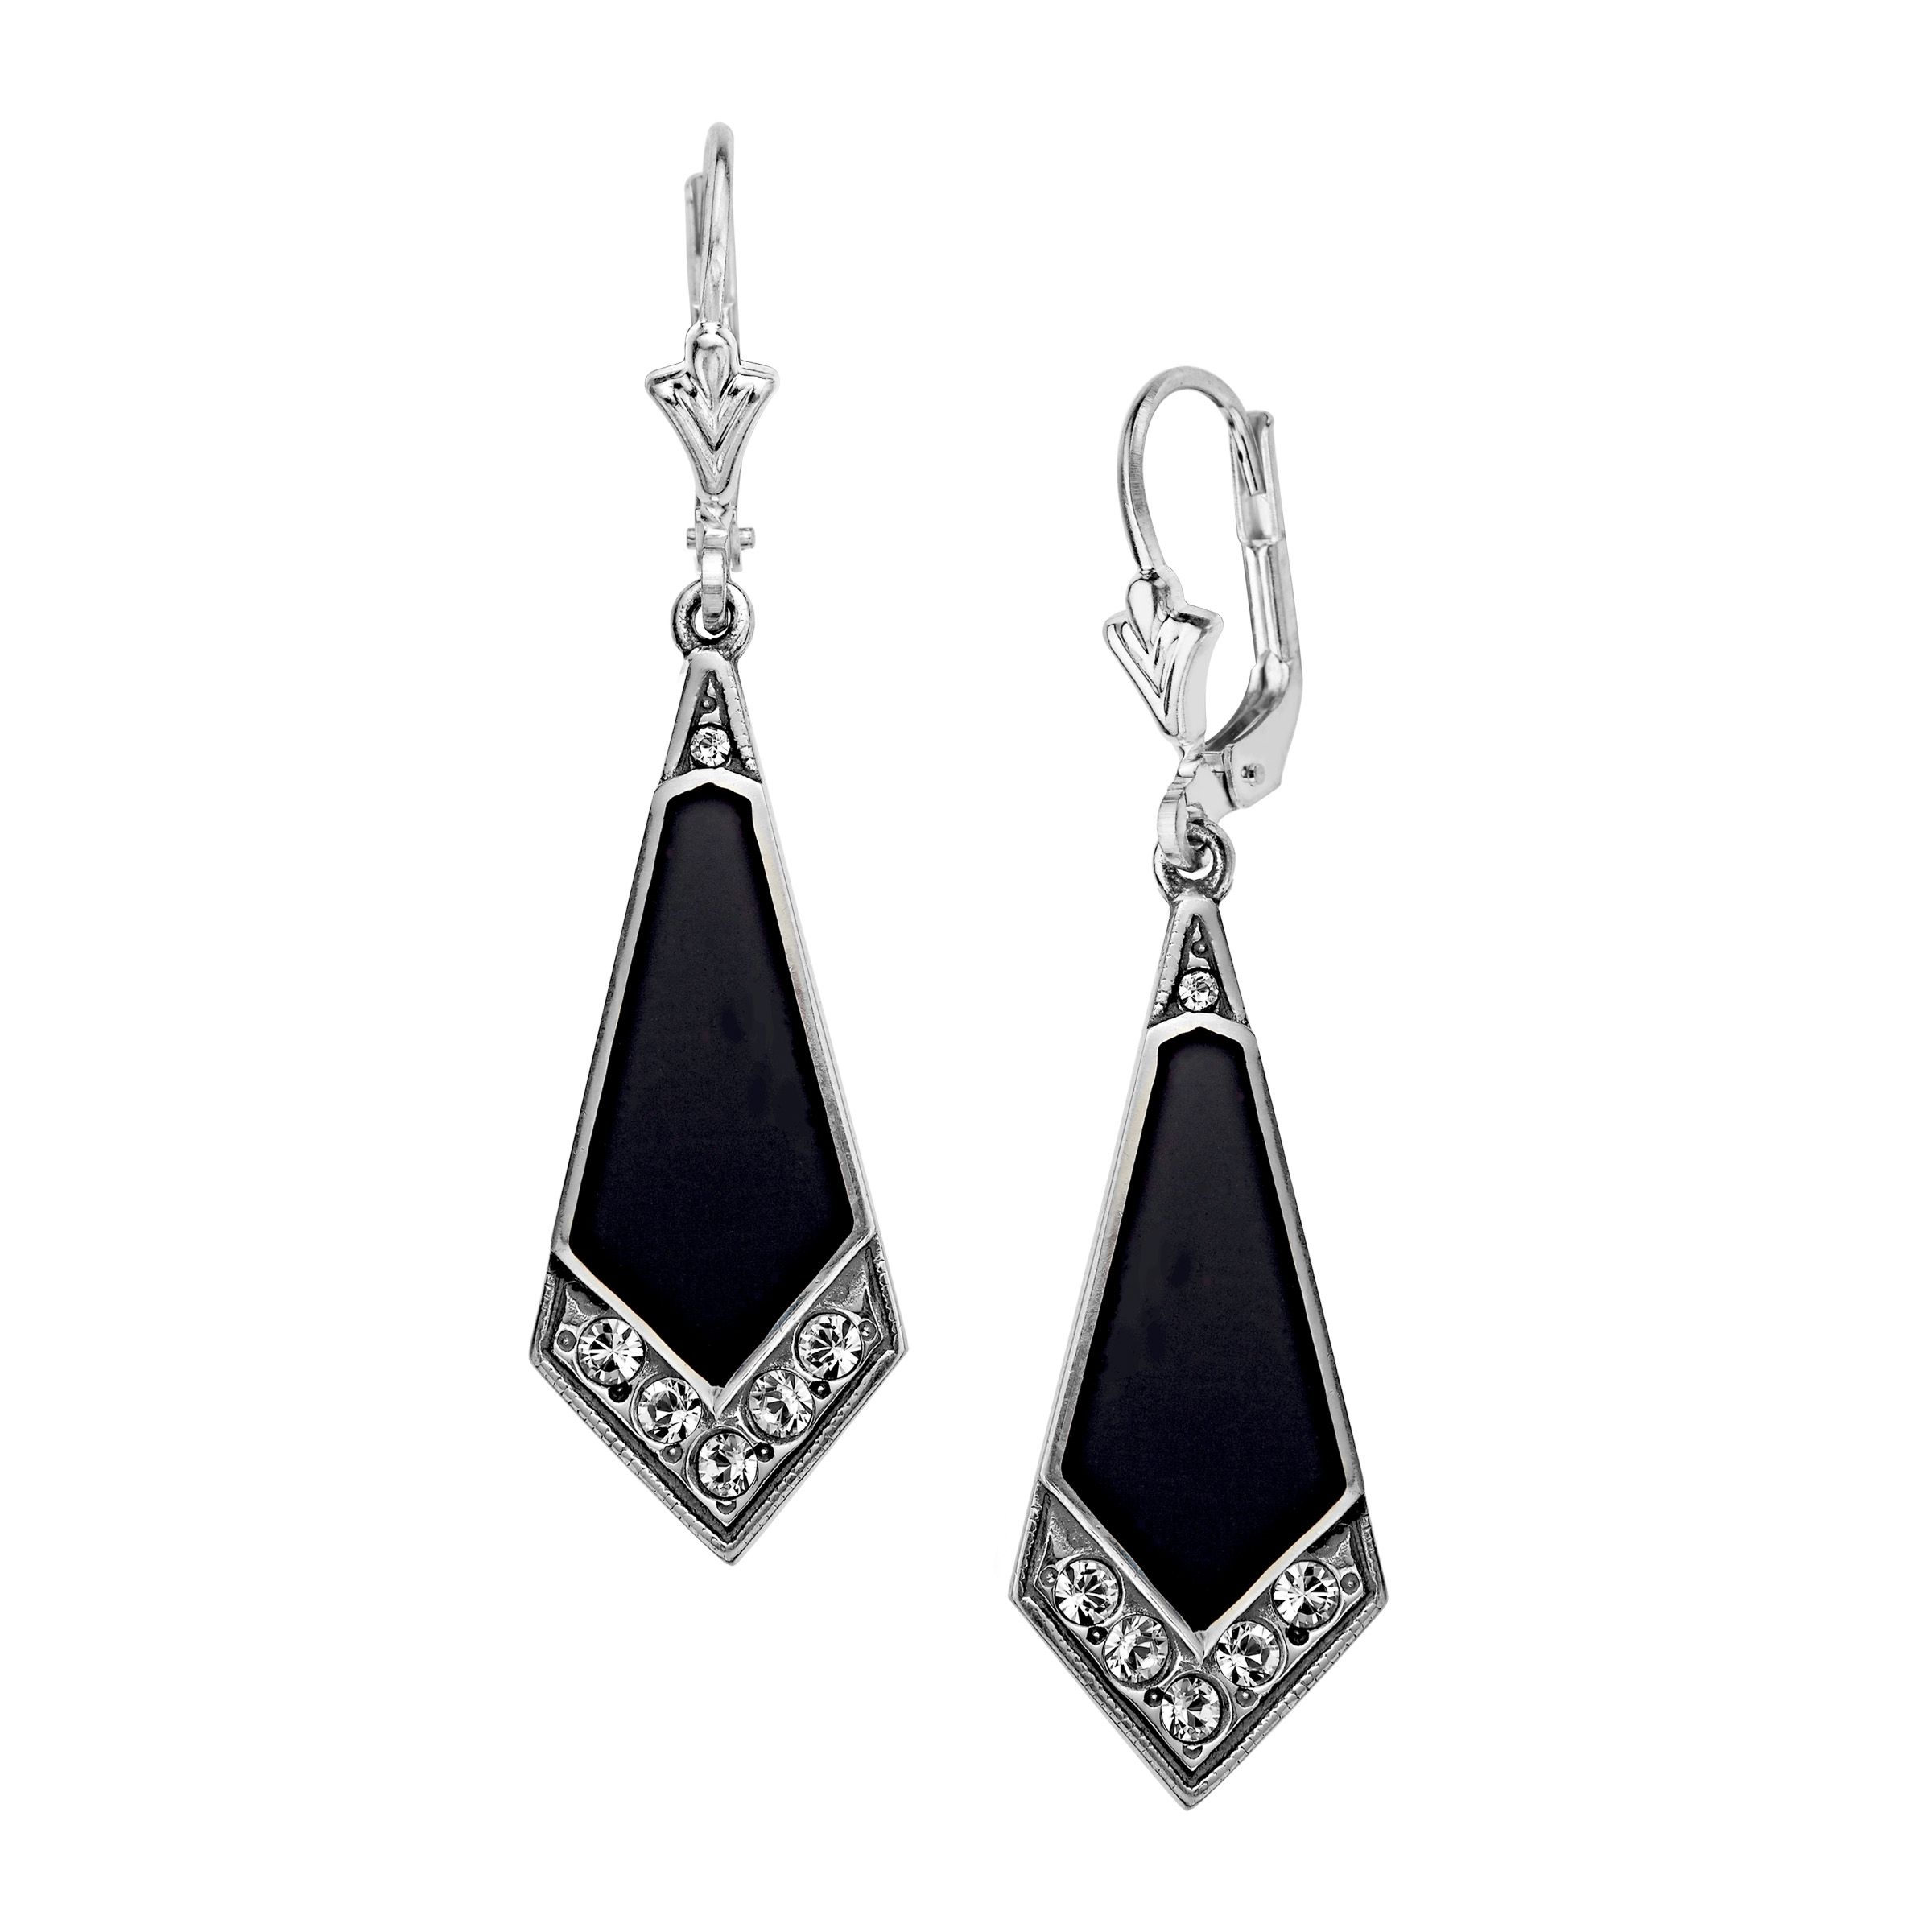 1920s earrings. Van Kempen Art Deco Drop Earrings with Swarovski Crystals in Sterling Silver from Jewelry.com $79.00 AT vintagedancer.com